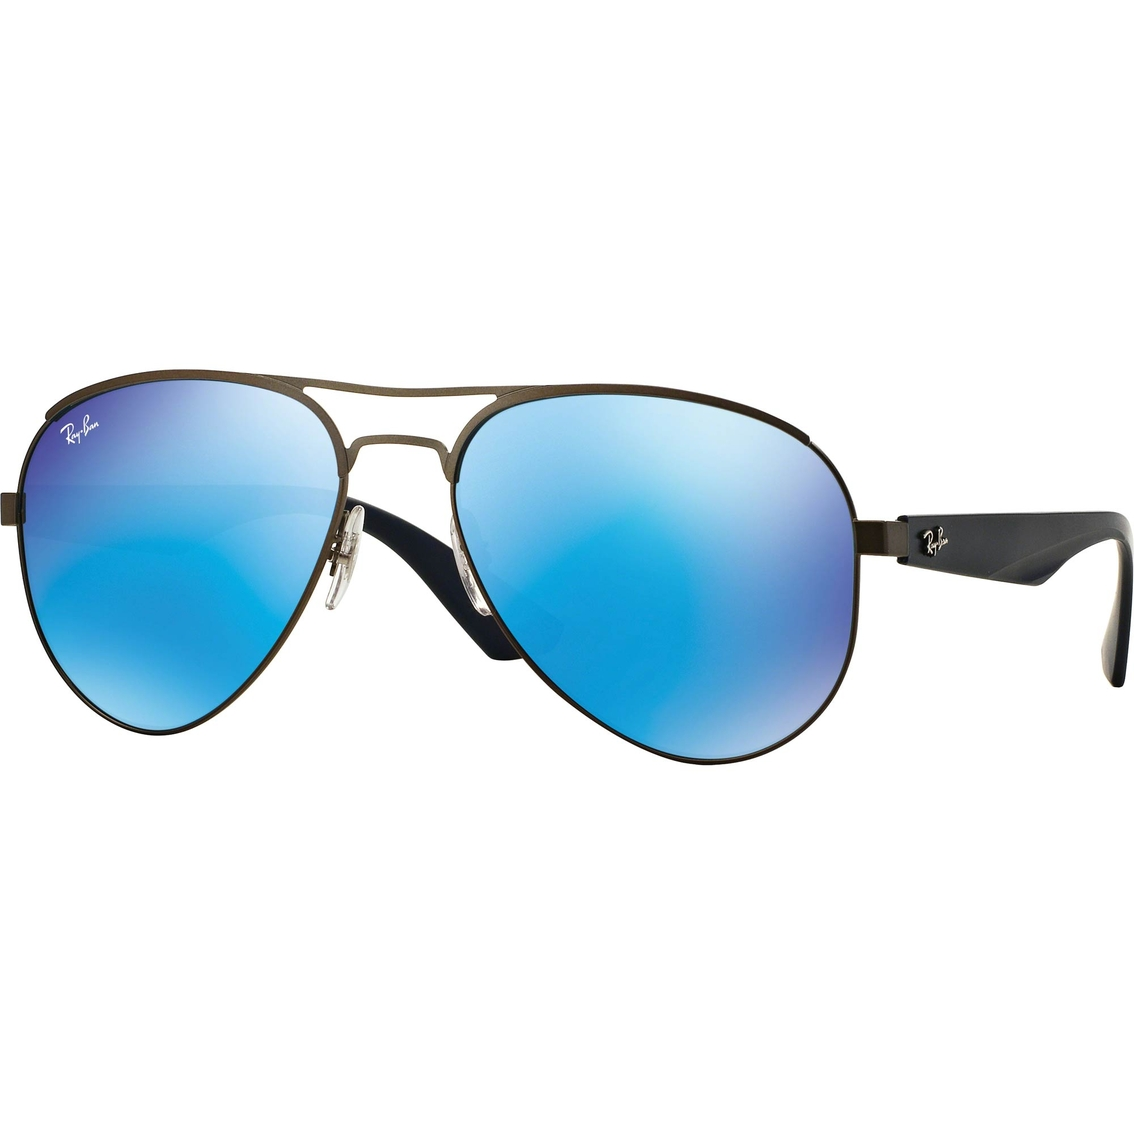 BABY BEACH Polarized Aviator Sunglasses. Baby Beach, located on the North Shore of Maui, is a perfect beach for keiki and adults alike to enjoy a day filled with sun and fun. Like their namesake, these frames from Maui Jim are offered in a fun series of bright colors nestled in a strong but lightweight frame that's perfect for any sort of.